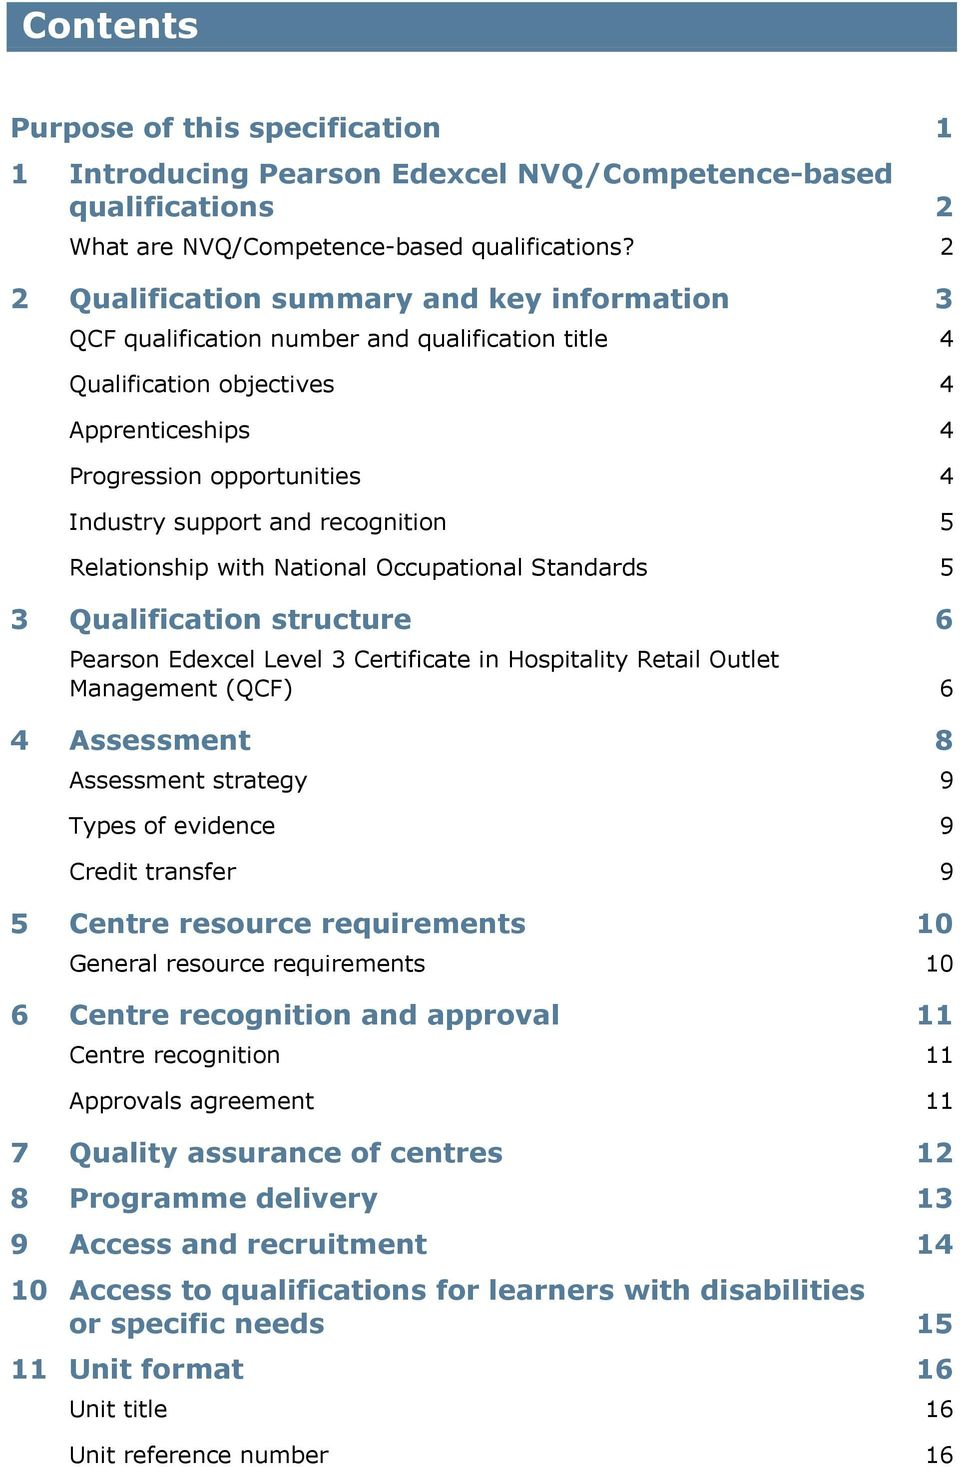 recognition 5 Relationship with National Occupational Standards 5 3 Qualification structure 6 Pearson Edexcel Level 3 Certificate in Hospitality Retail Outlet Management (QCF) 6 4 Assessment 8